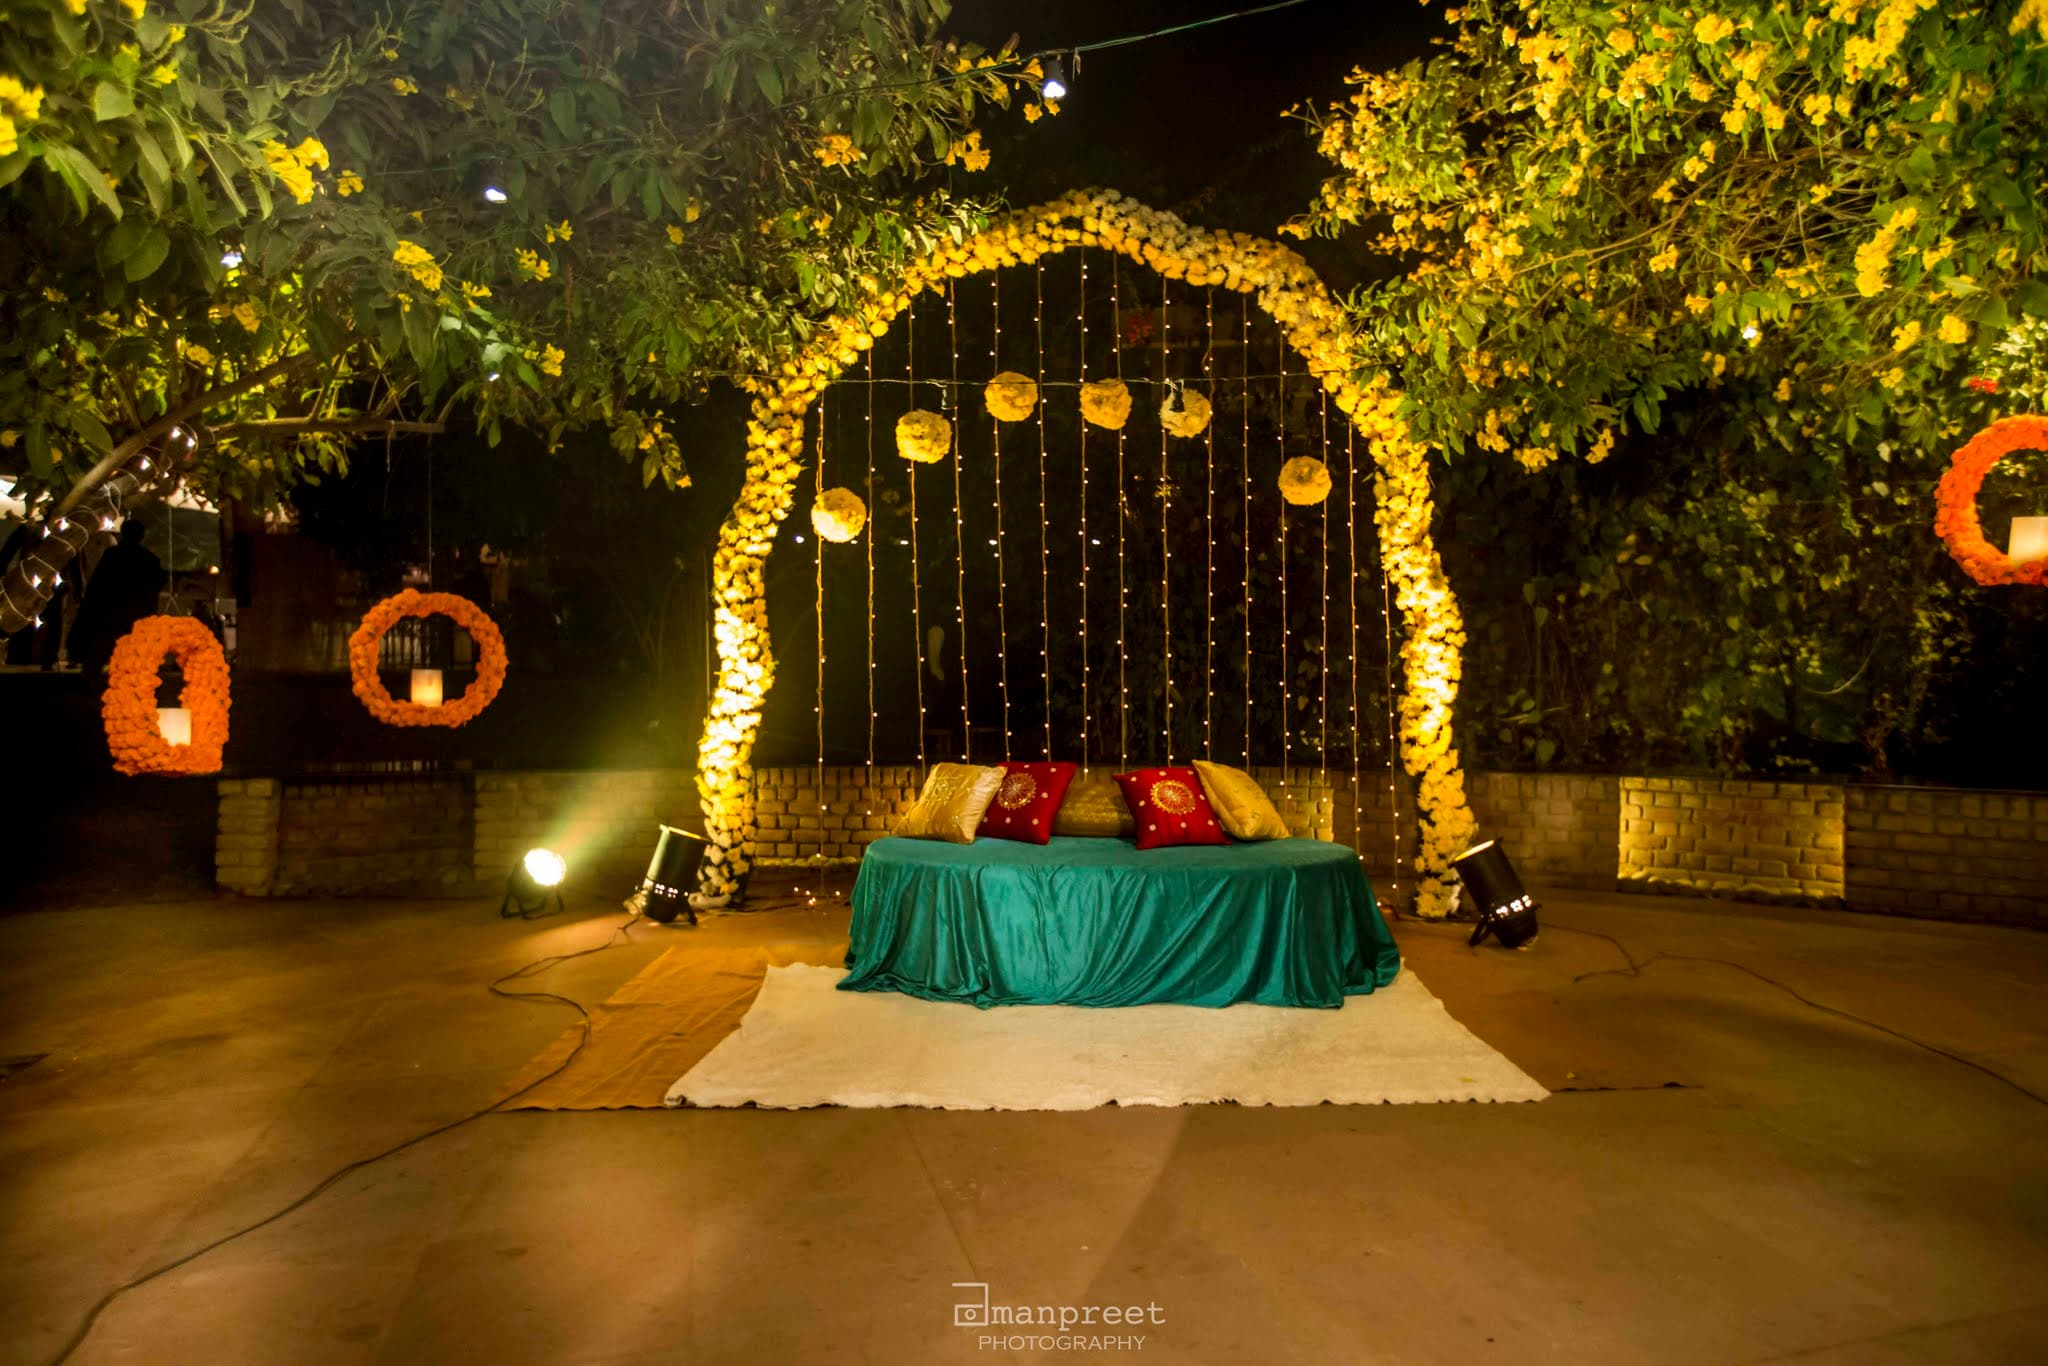 the grand wedding!:the umrao, mandira wirk, amanpreet photography, zorba